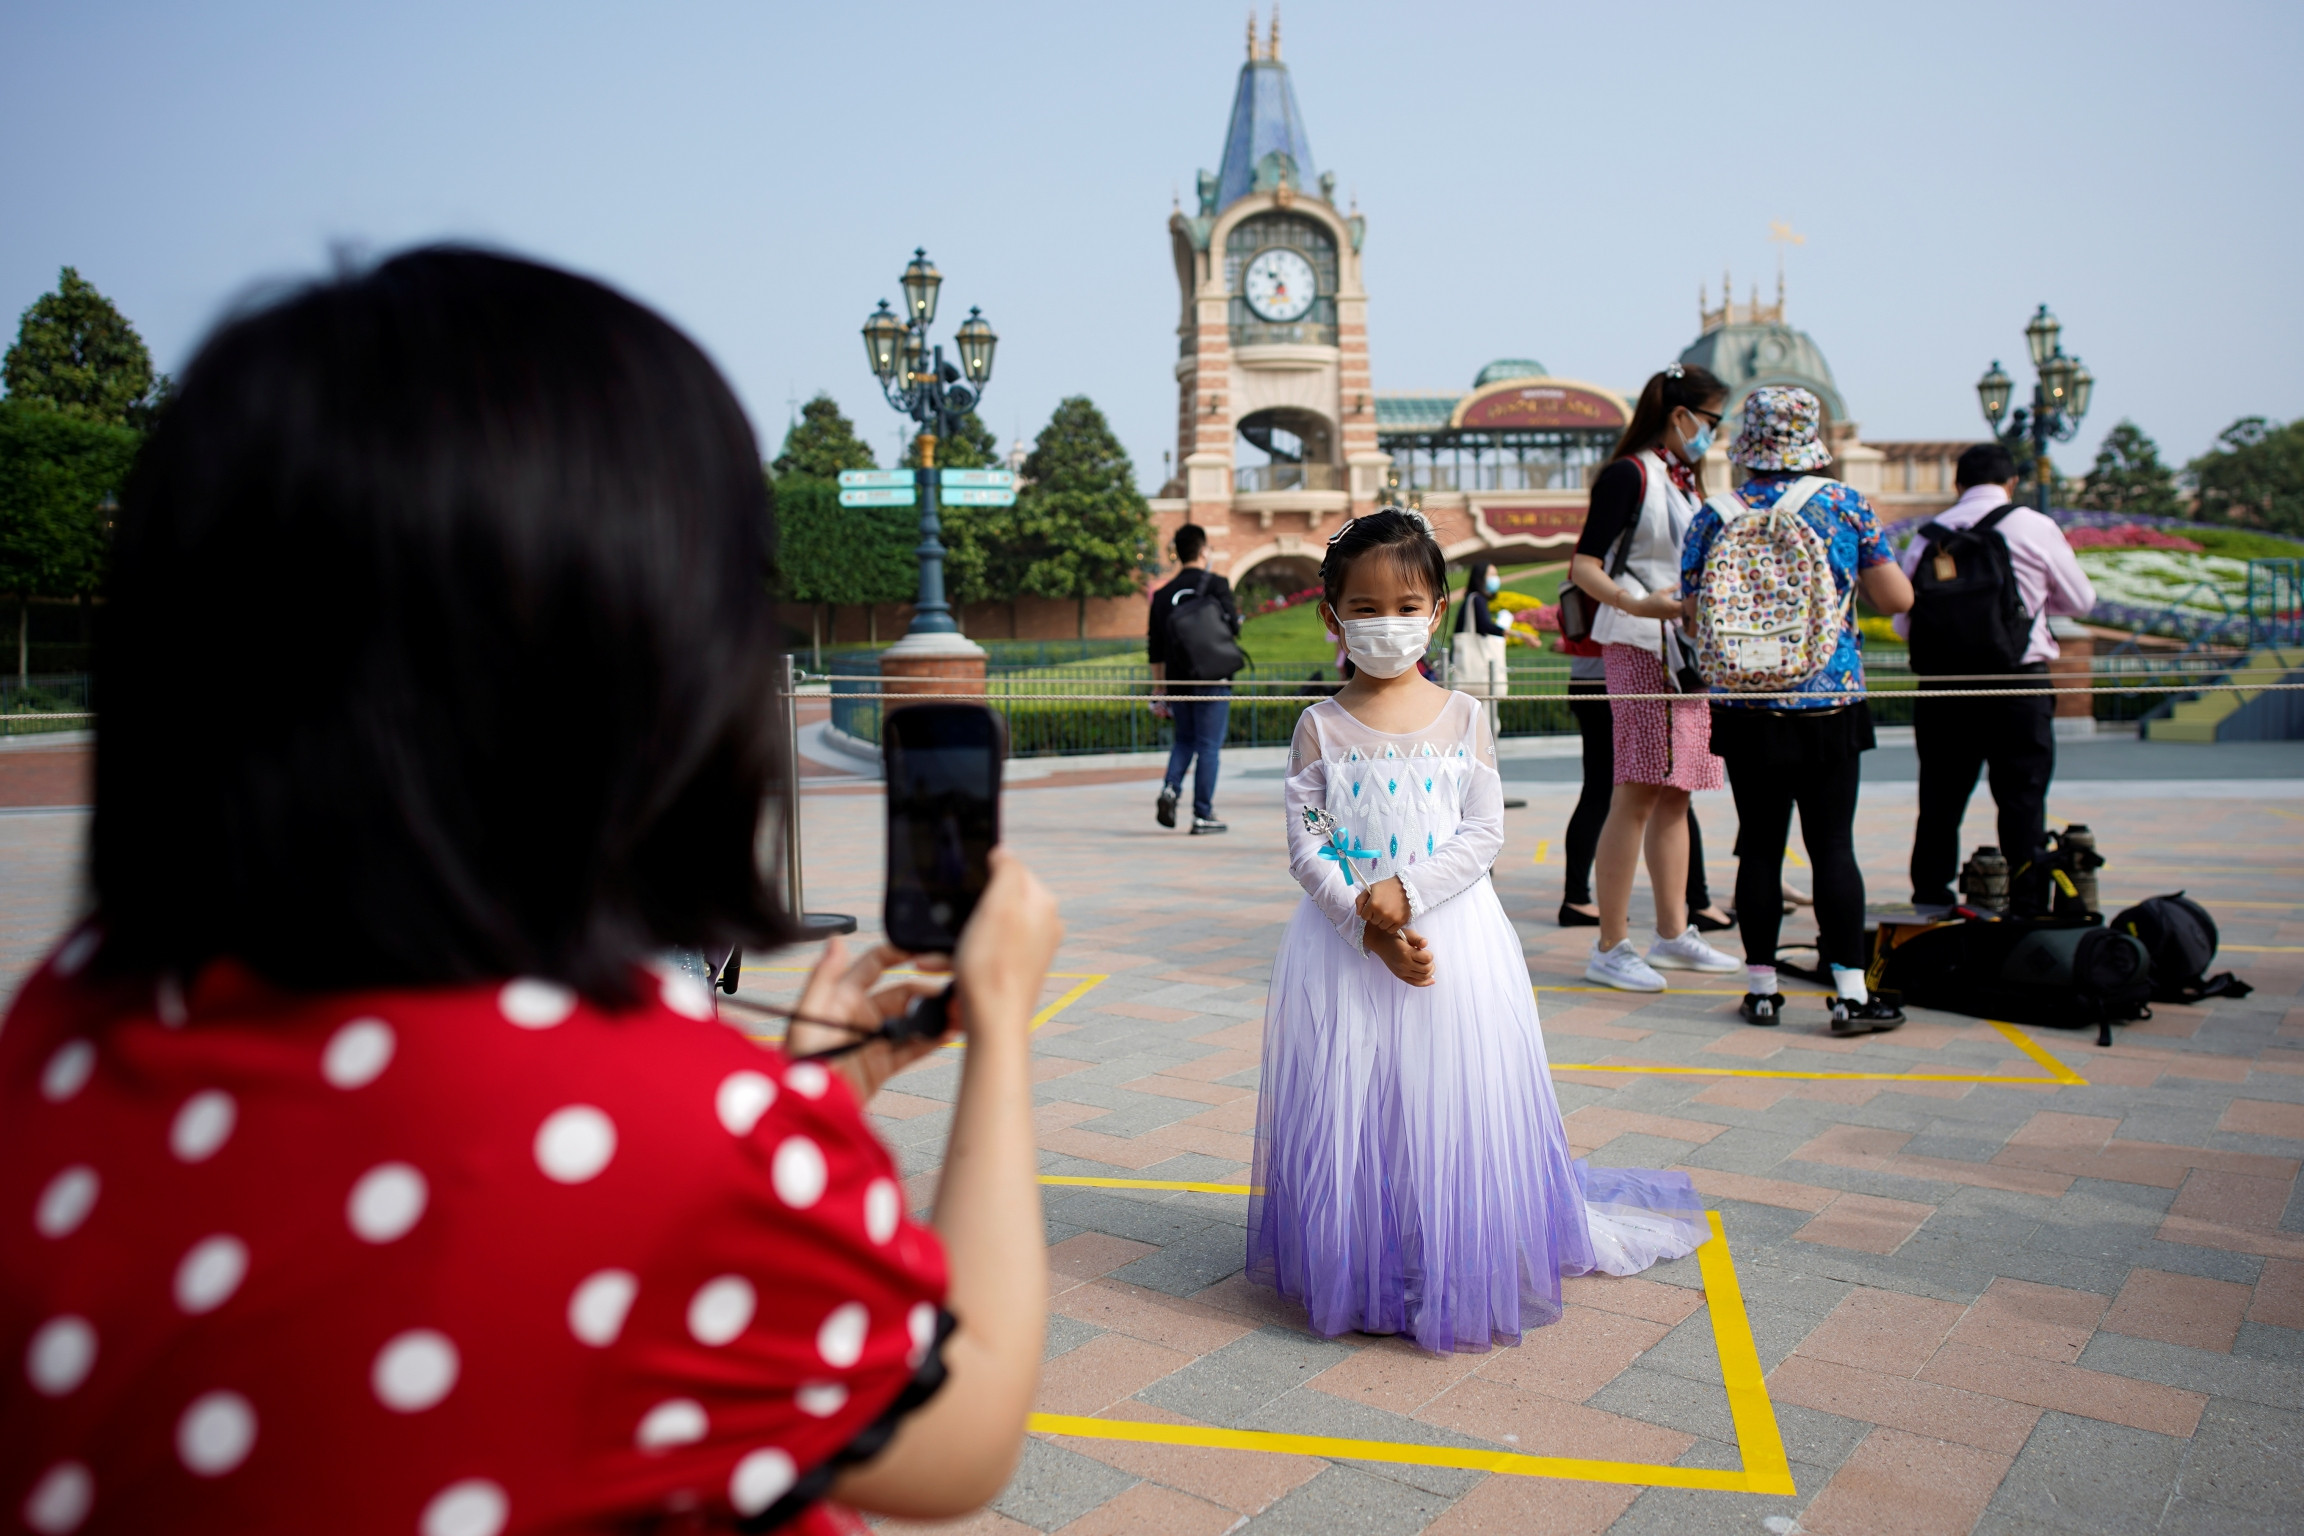 A mother photographs her child wearing a face mask and a princess gown at Disneyland in Shanghai.